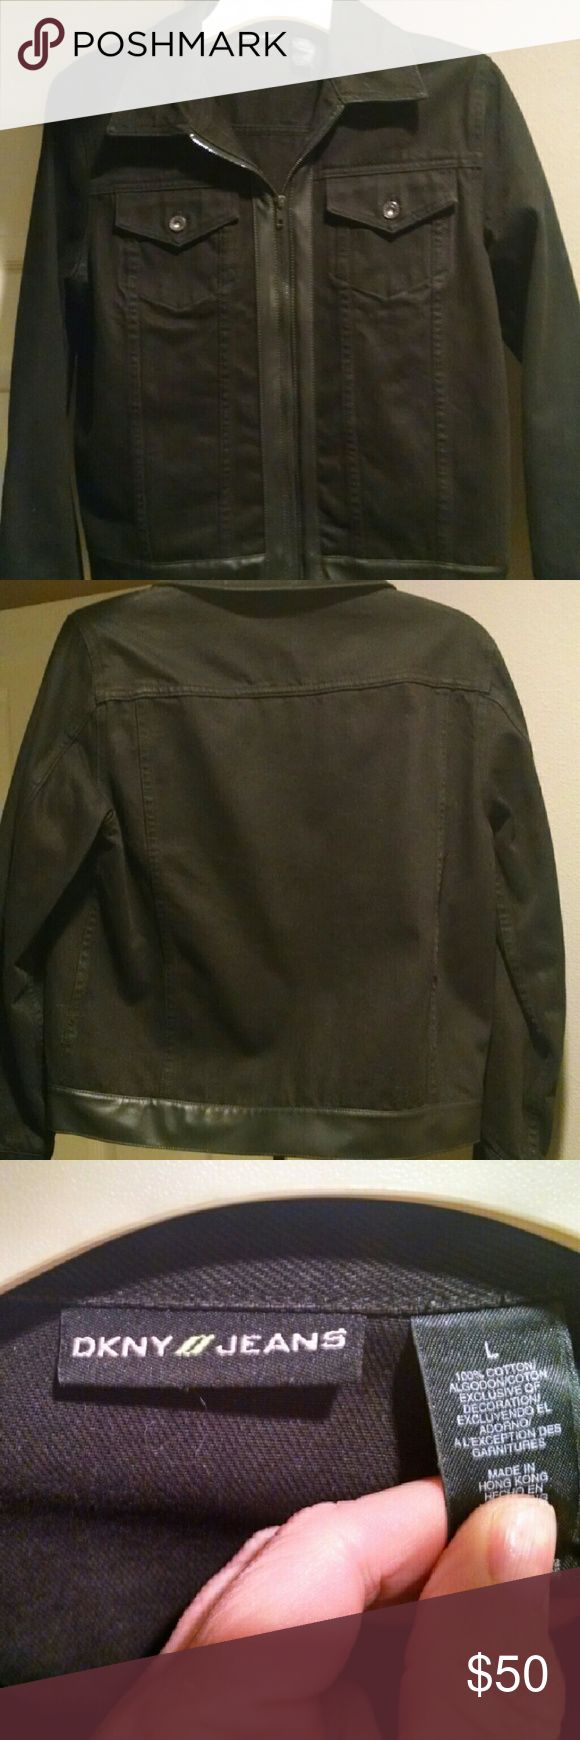 DKNY Black jean jacket w/leather trim Heavy black Jean jacket 100? cotton, excellent condition DKNY Jeans Jackets & Coats Jean Jackets